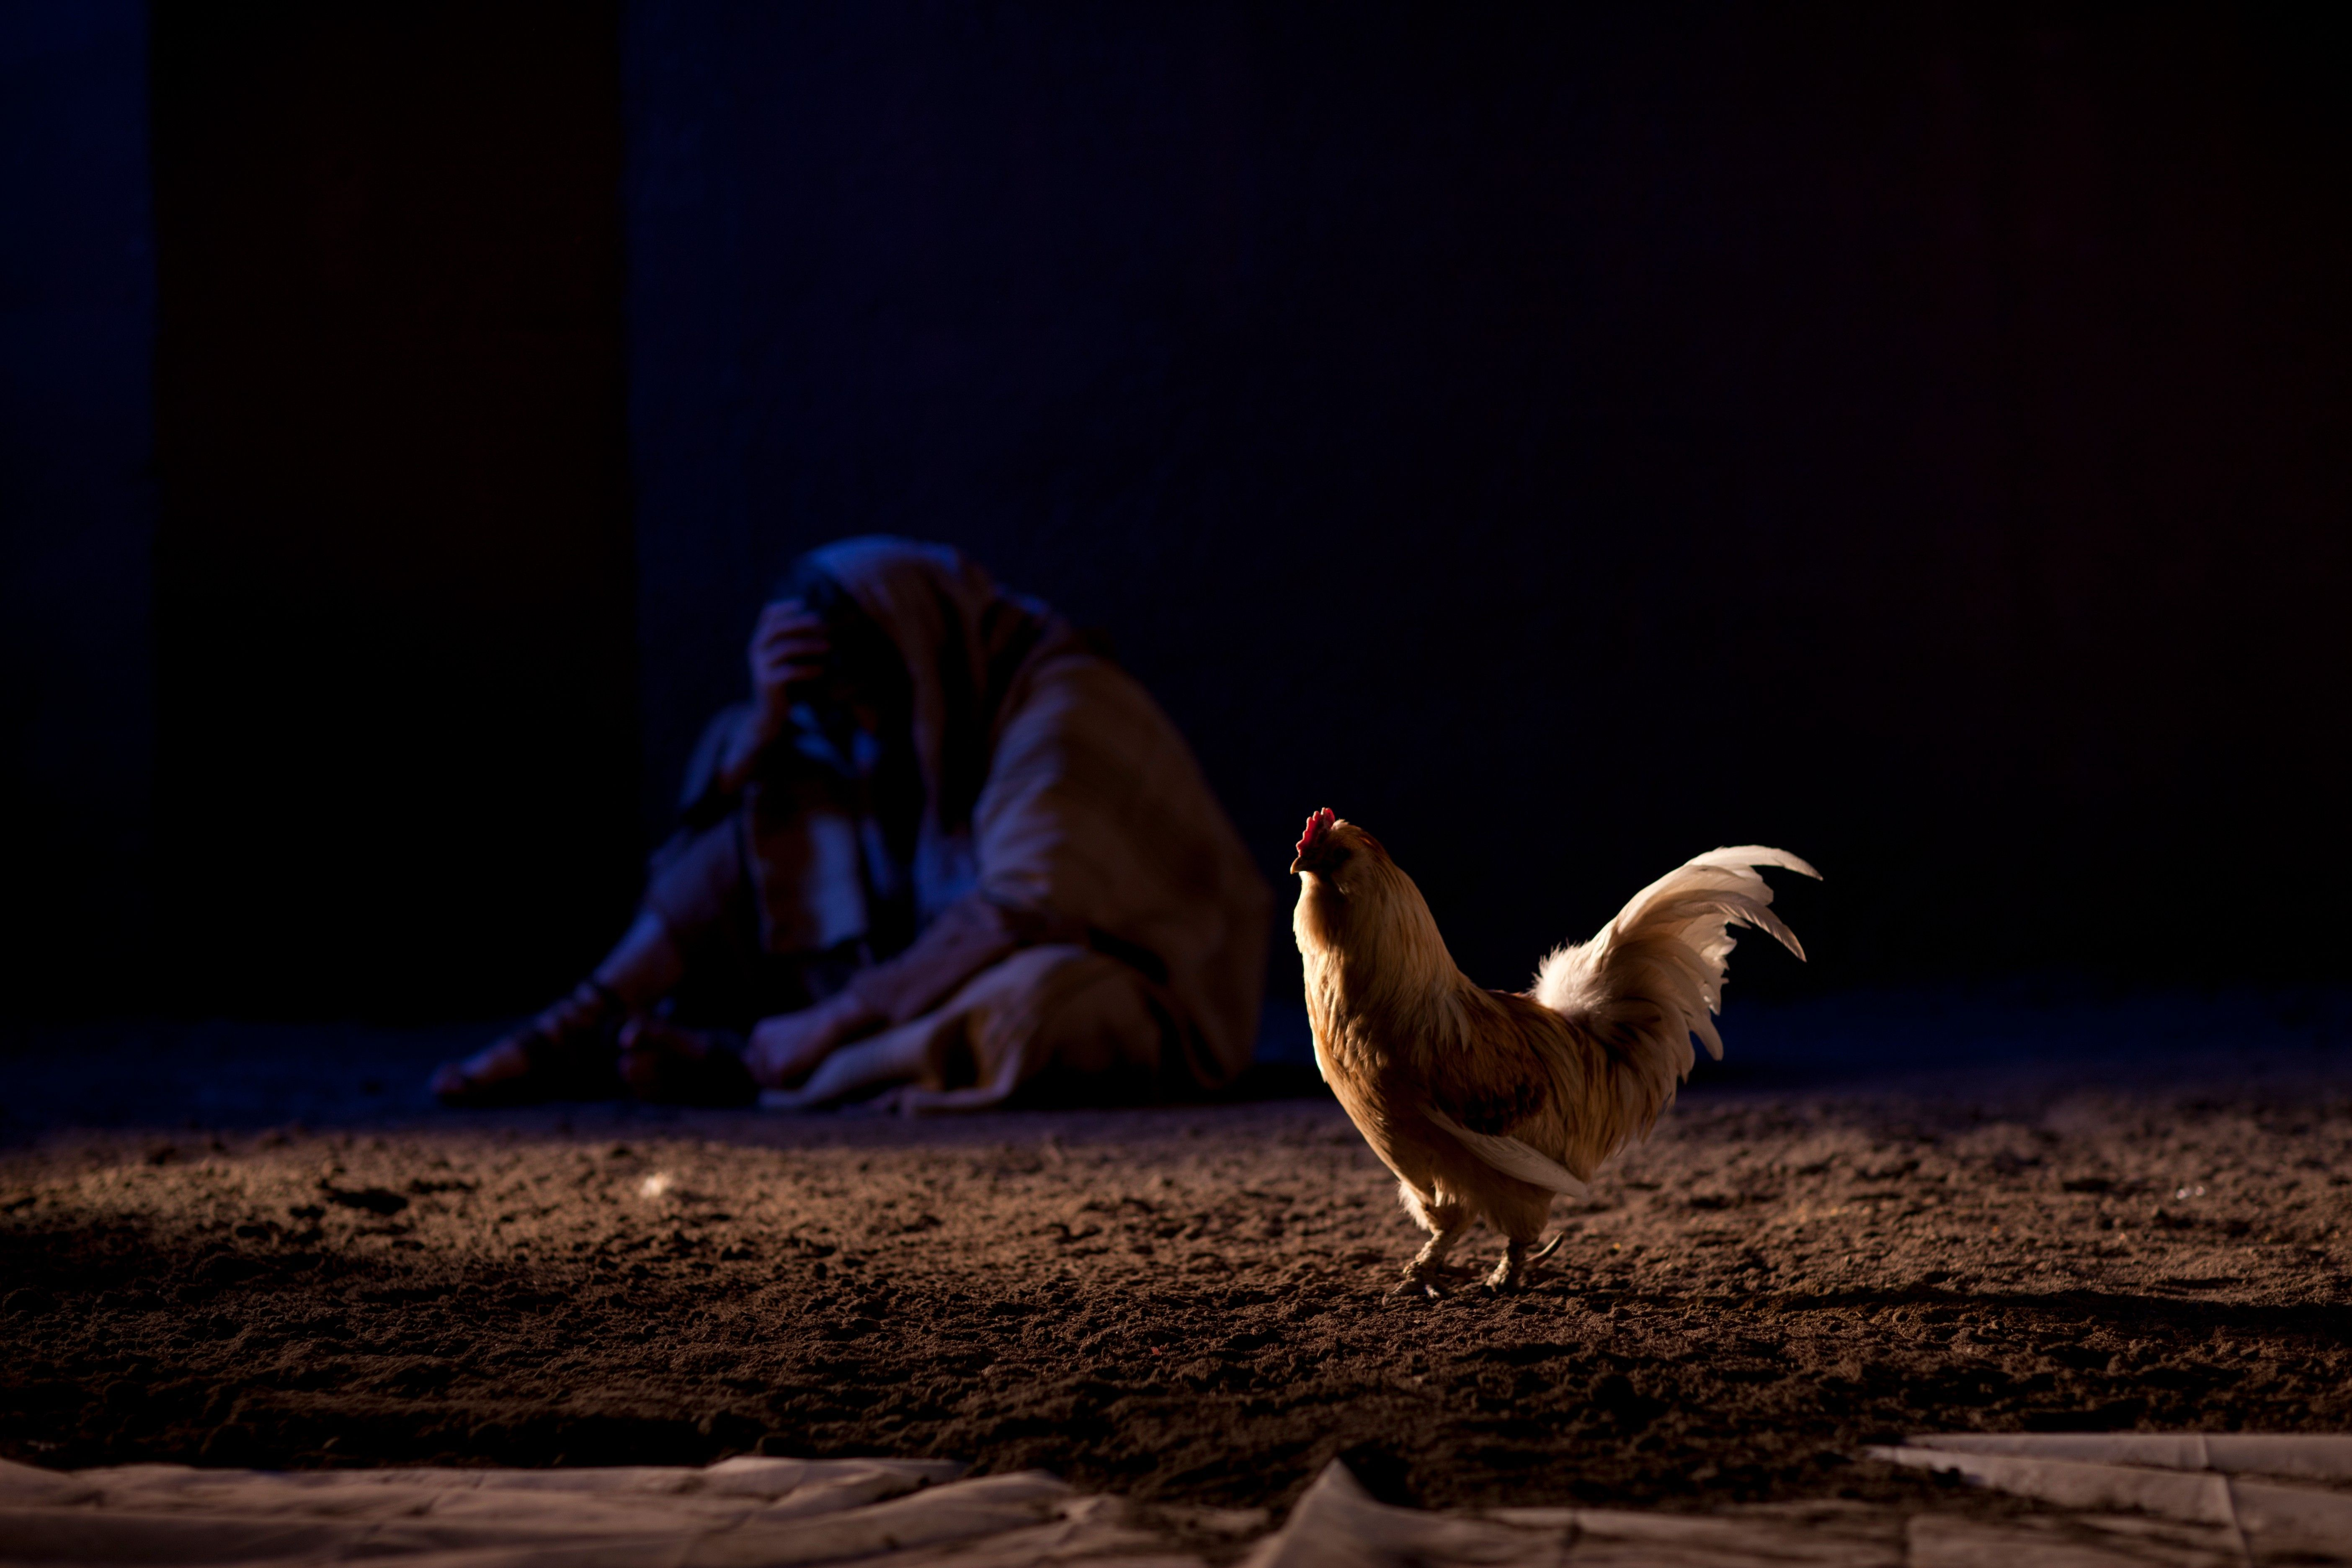 Peter in despair, sitting near a rooster after having denied Christ.